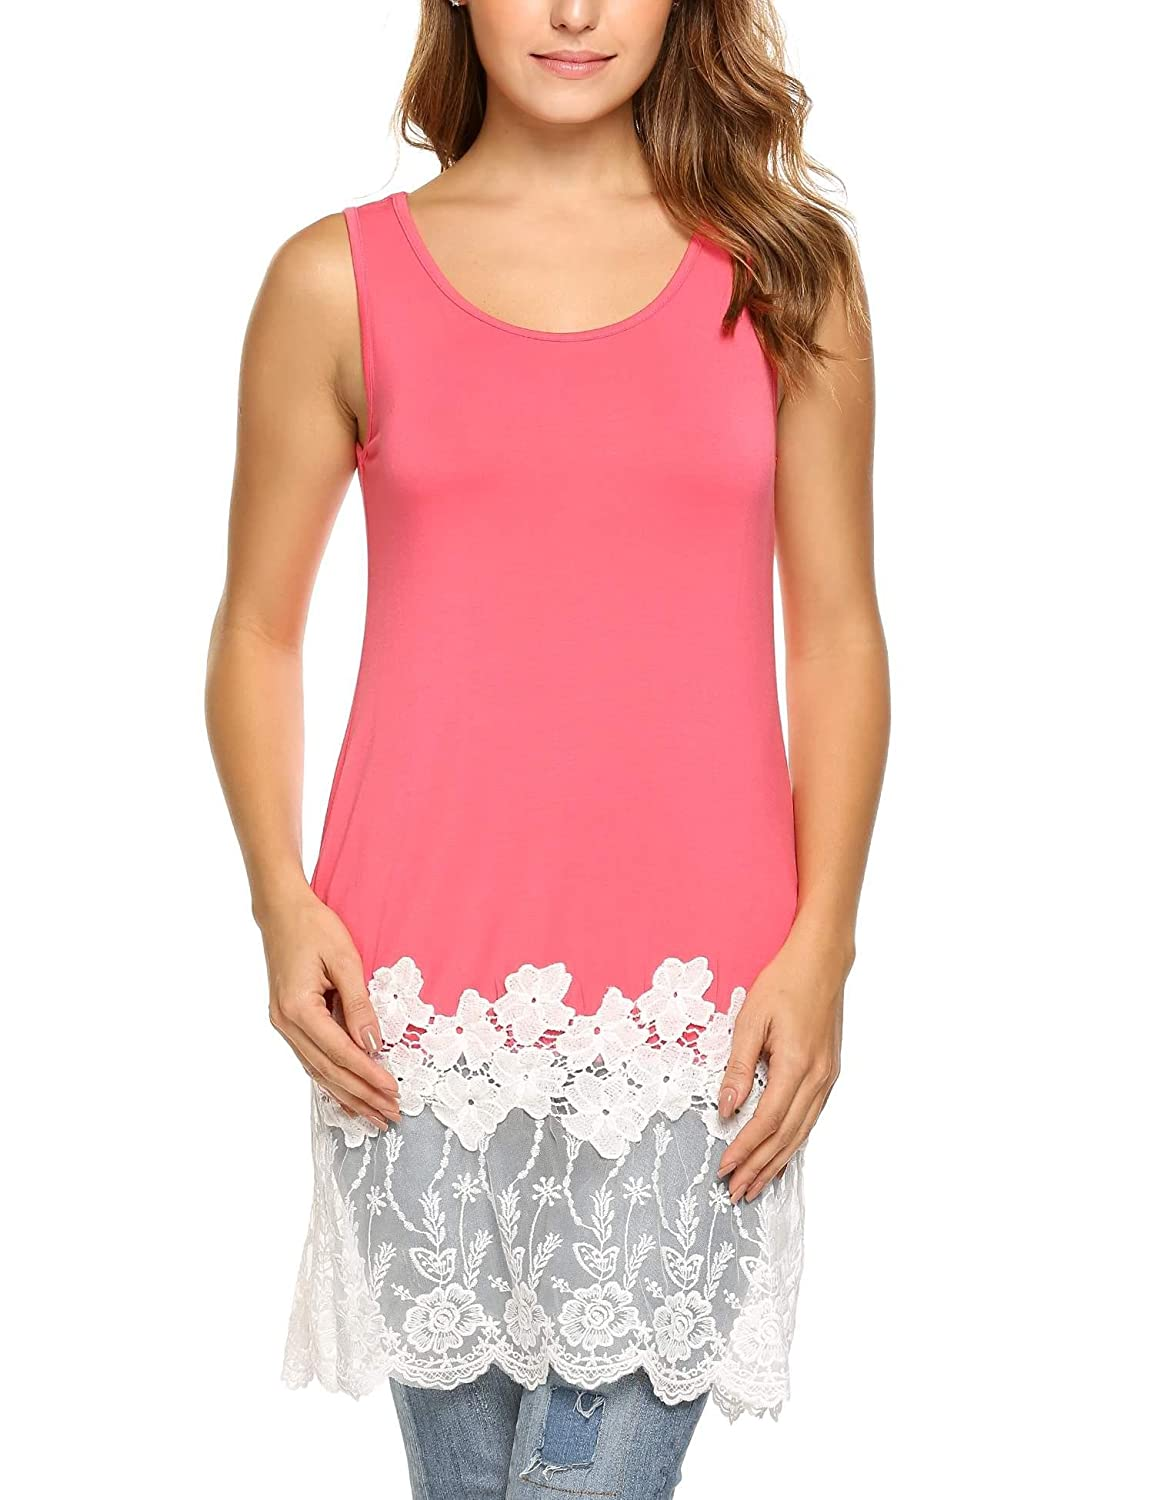 27868c8a1980f5 A soft sleeveless oversized and slim fitting tank top in a variety of soft  heathered colors. Featuring Scoop neck slim fitting cute vintage floral  crochet ...